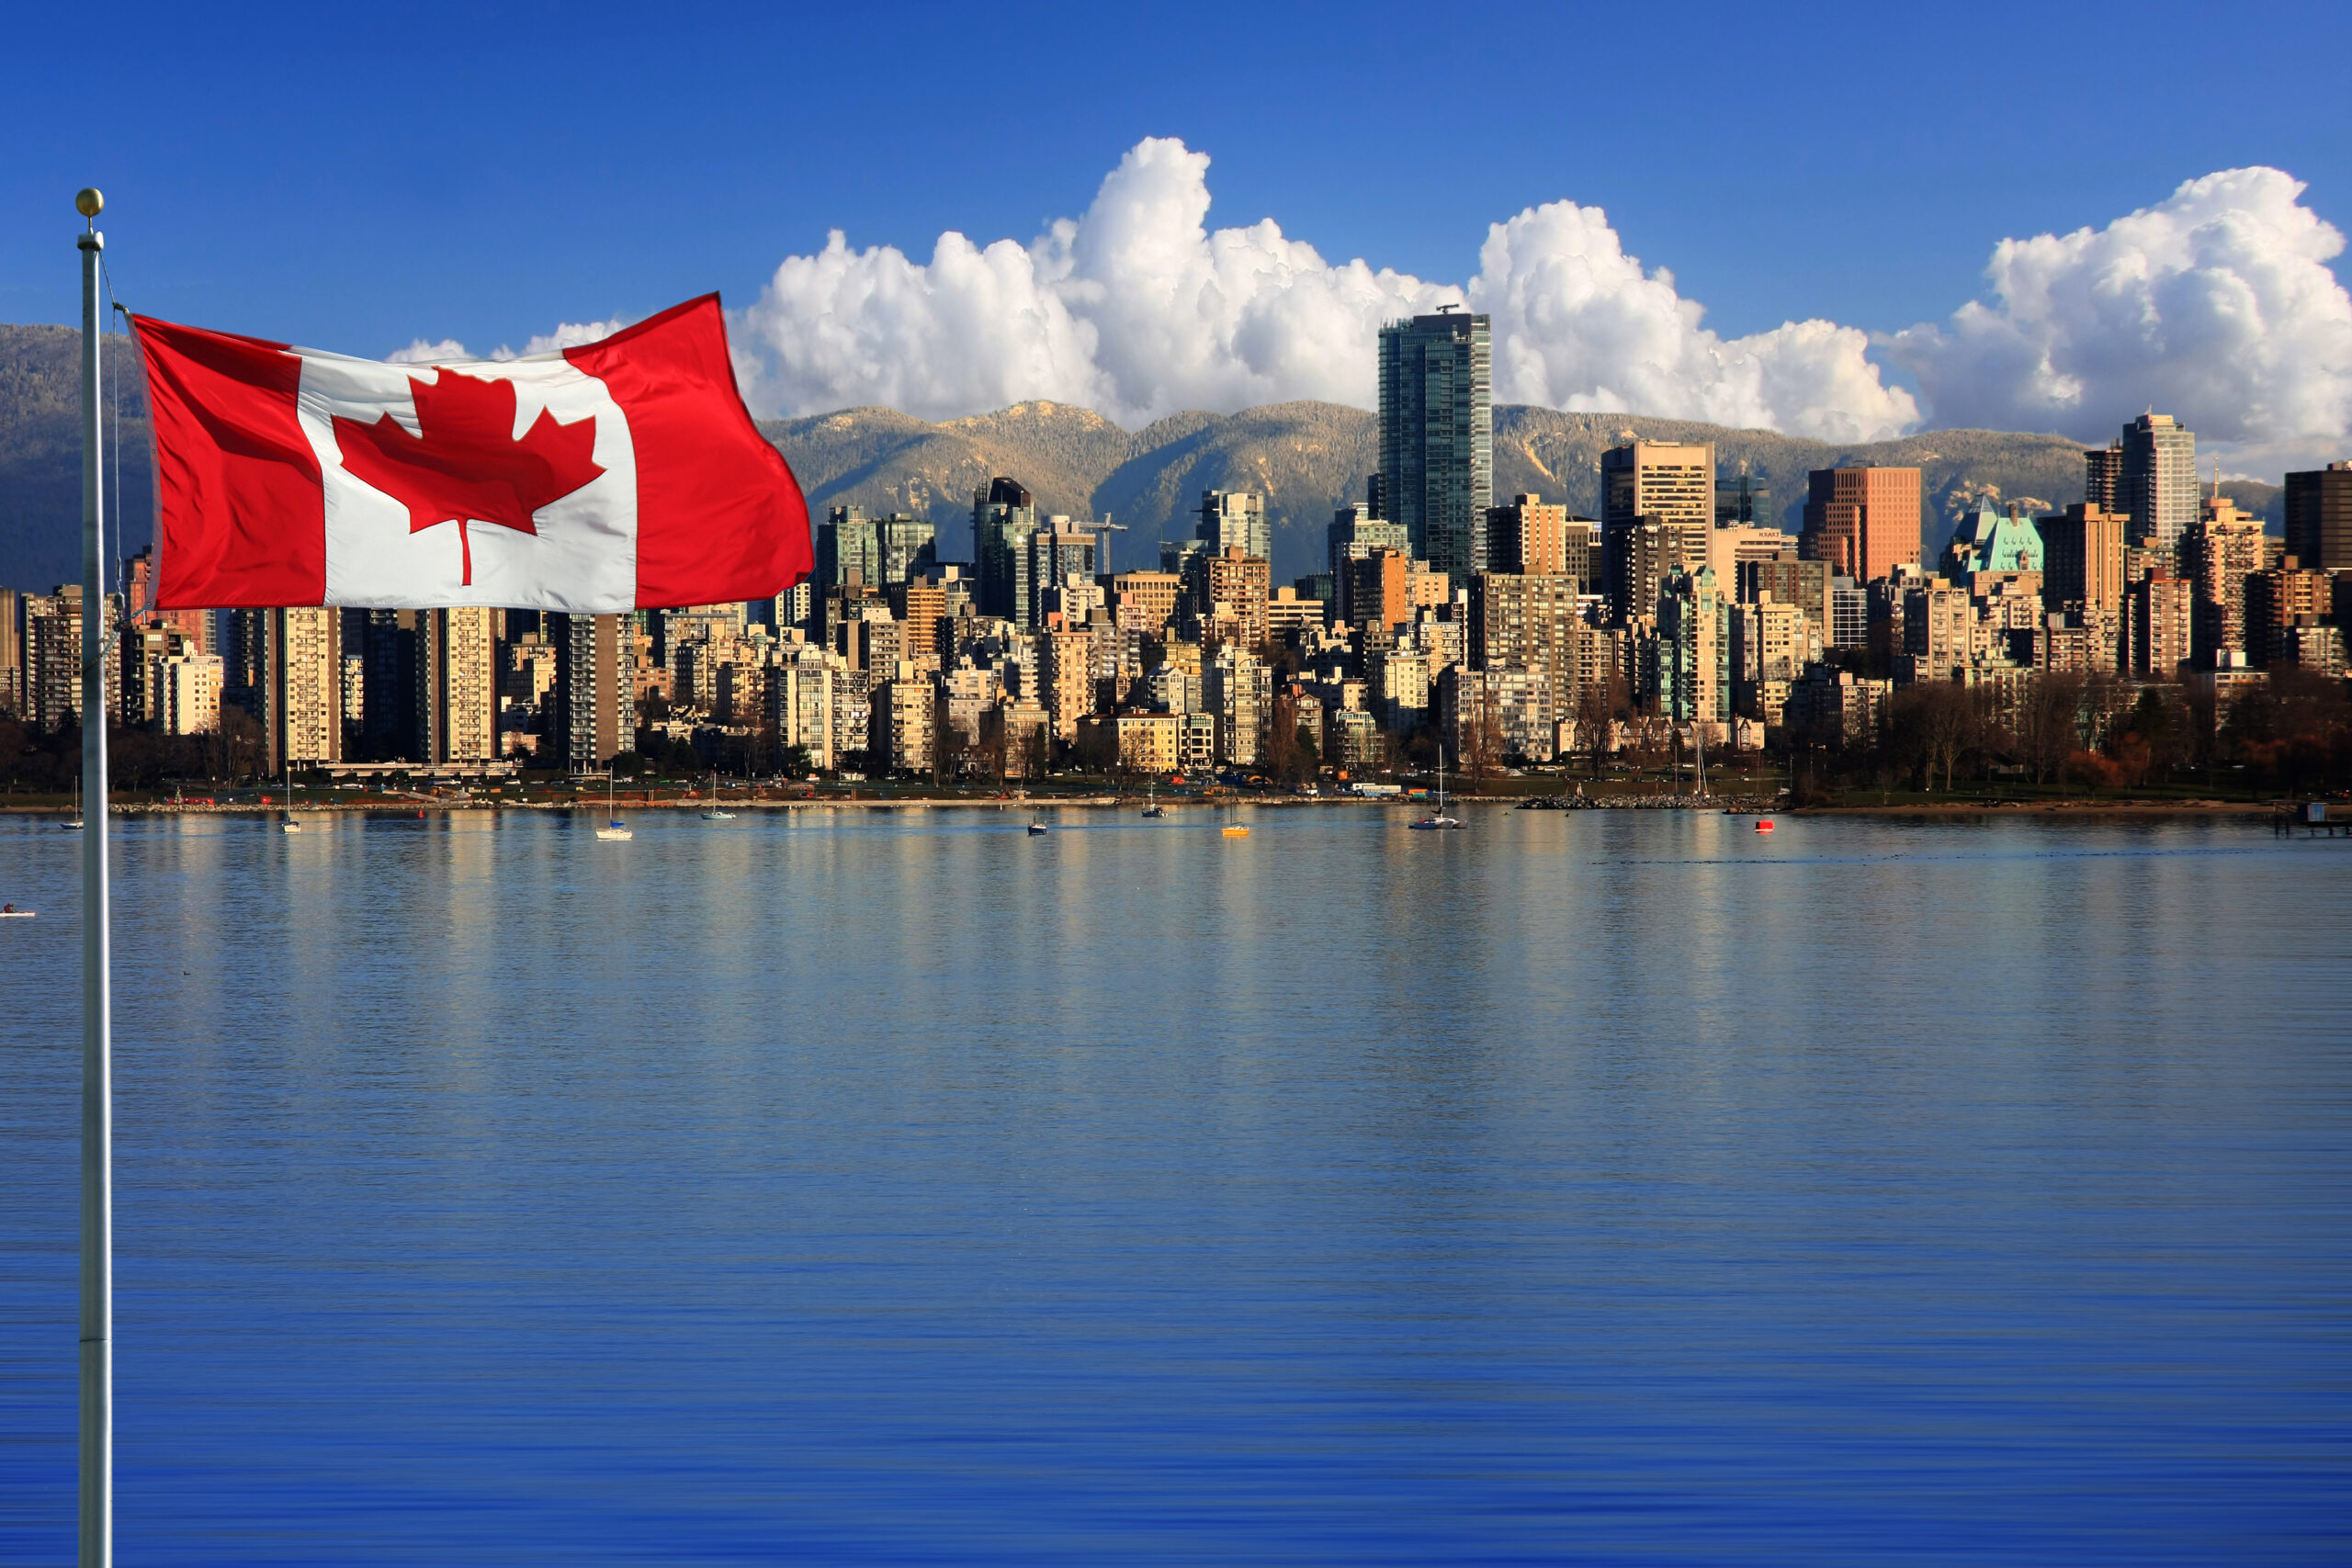 Differences between Canada and the US: Canadian flag in front of the Vancouver skyline